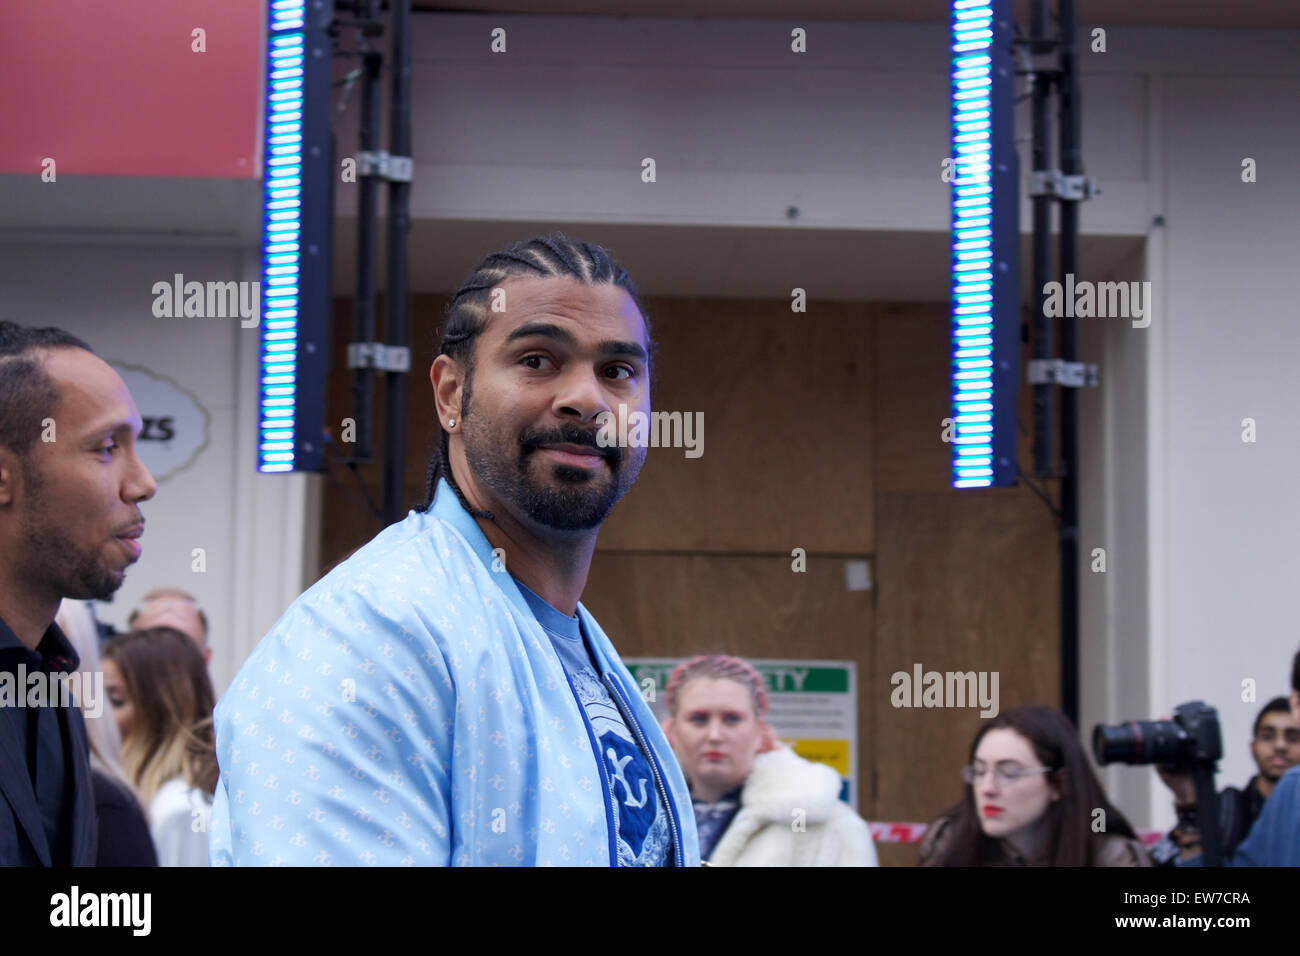 David Haye,british boxer attends the blue carpet movie premier of 'Entourage the movie' at the Vue in Leicester - Stock Image